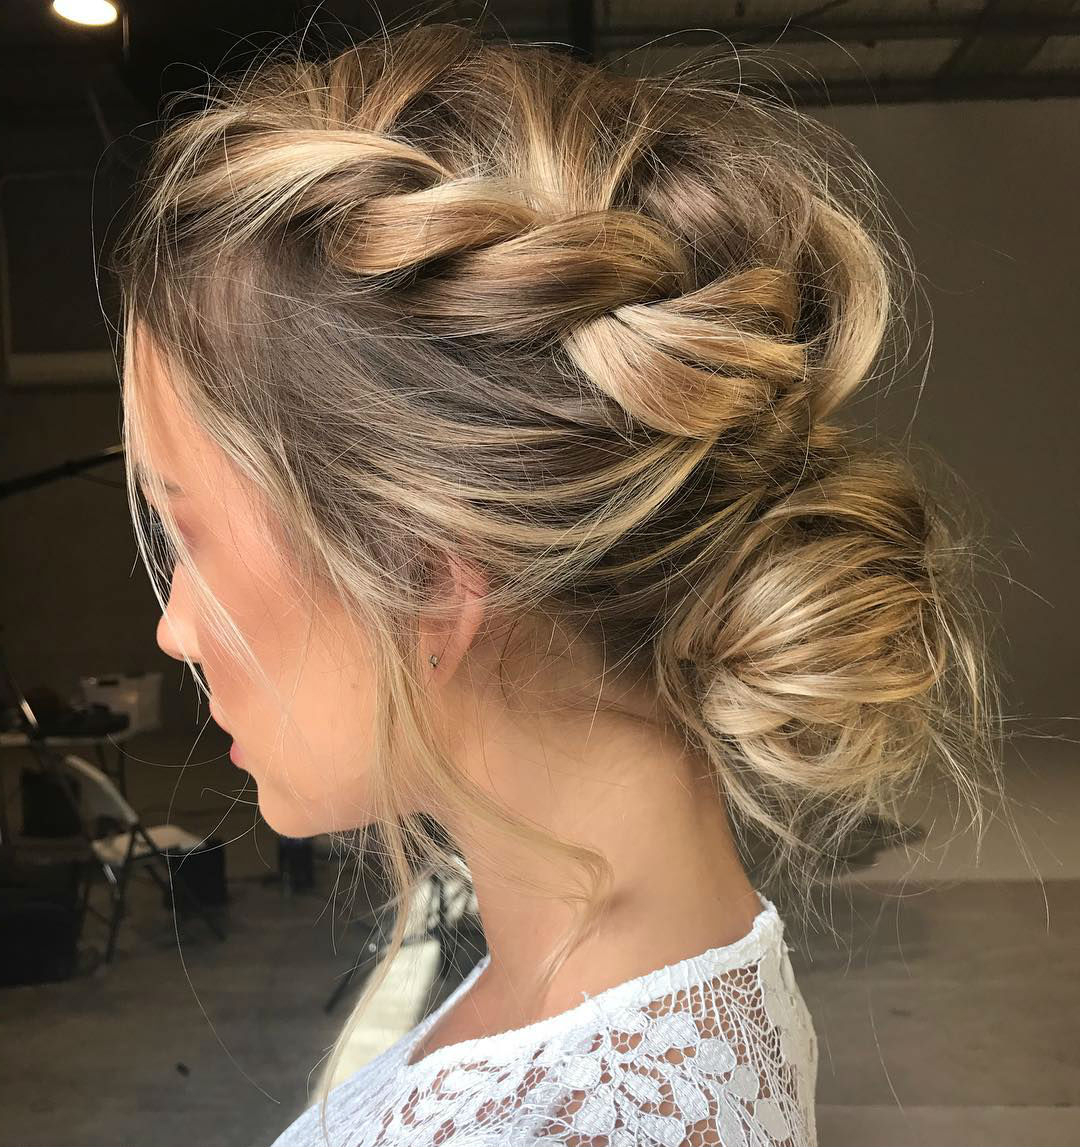 2018 Wedding Hair Trends (View 10 of 20)